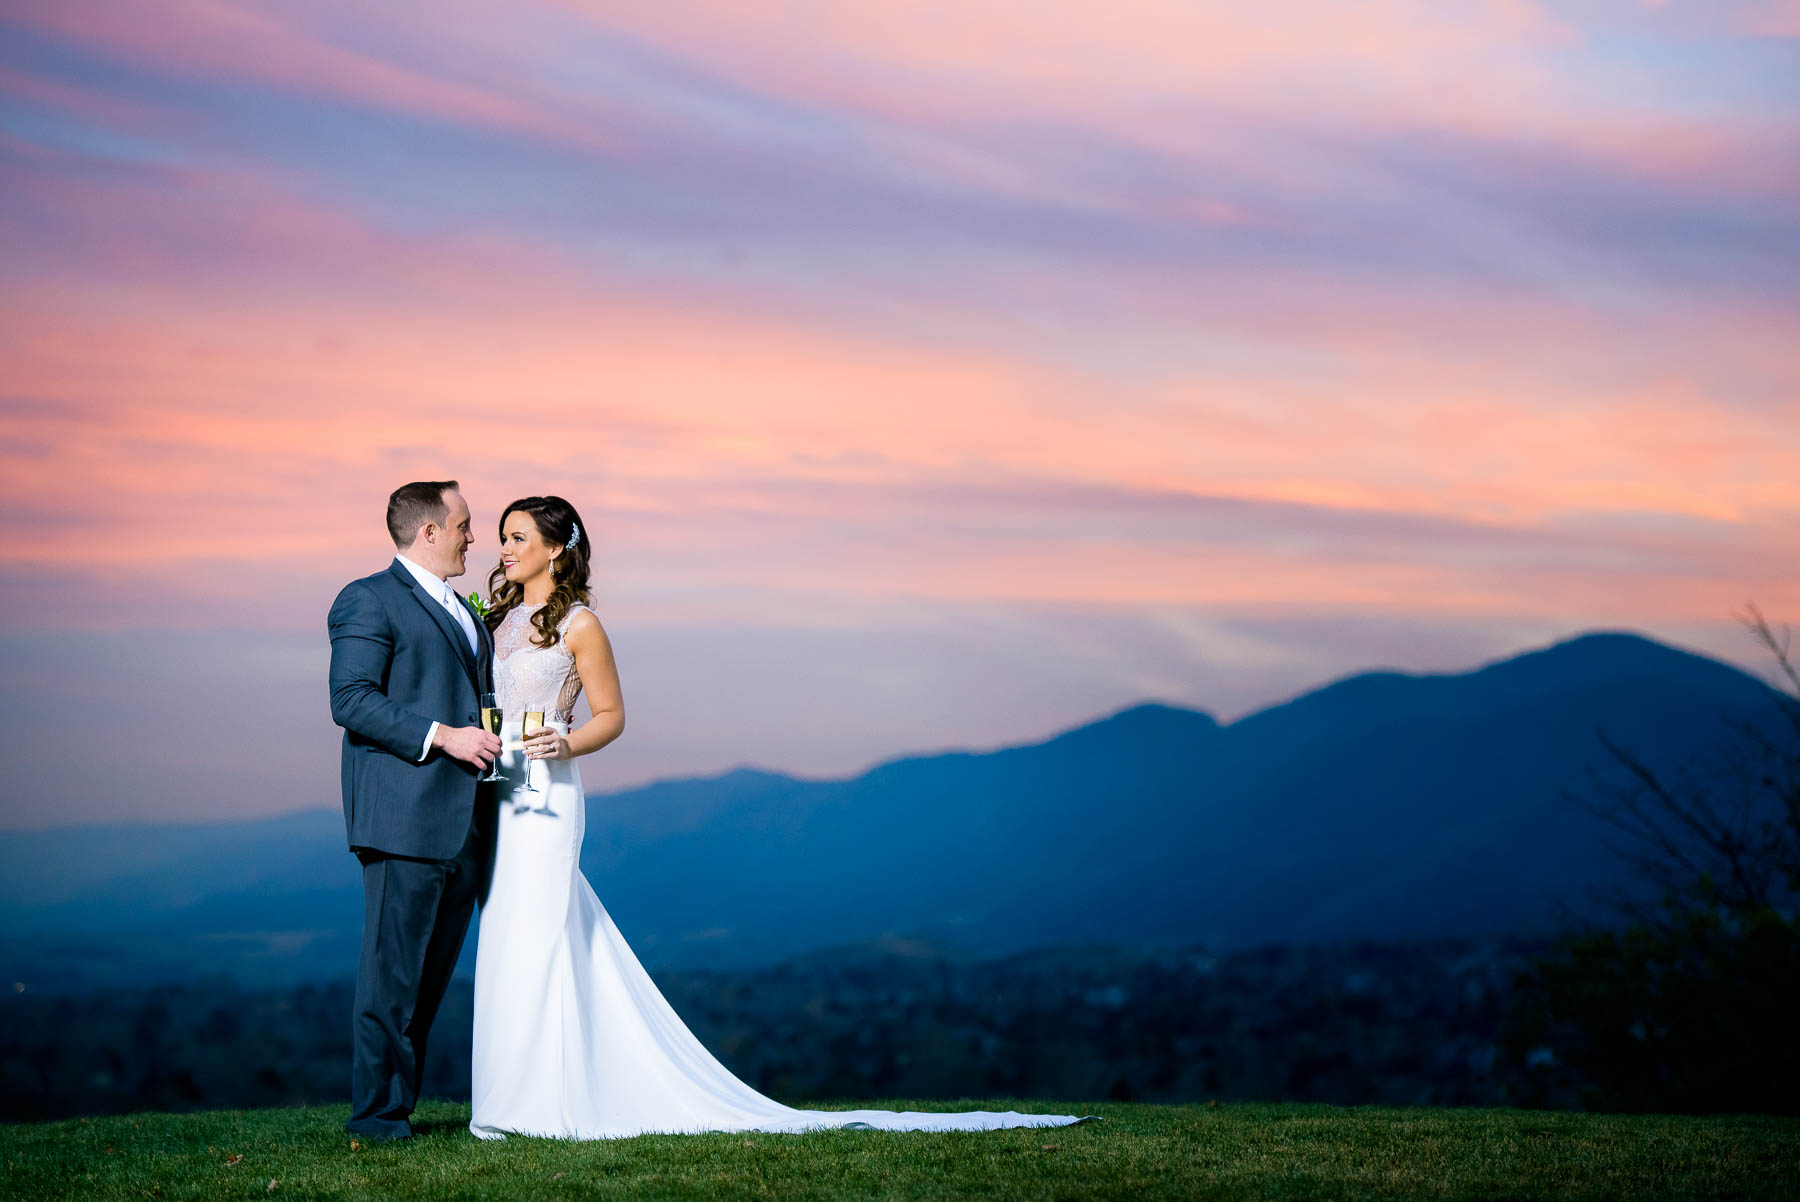 Sunset portrait of the bride and groom on their wedding day at the Manor House in Littleton, Colorado.